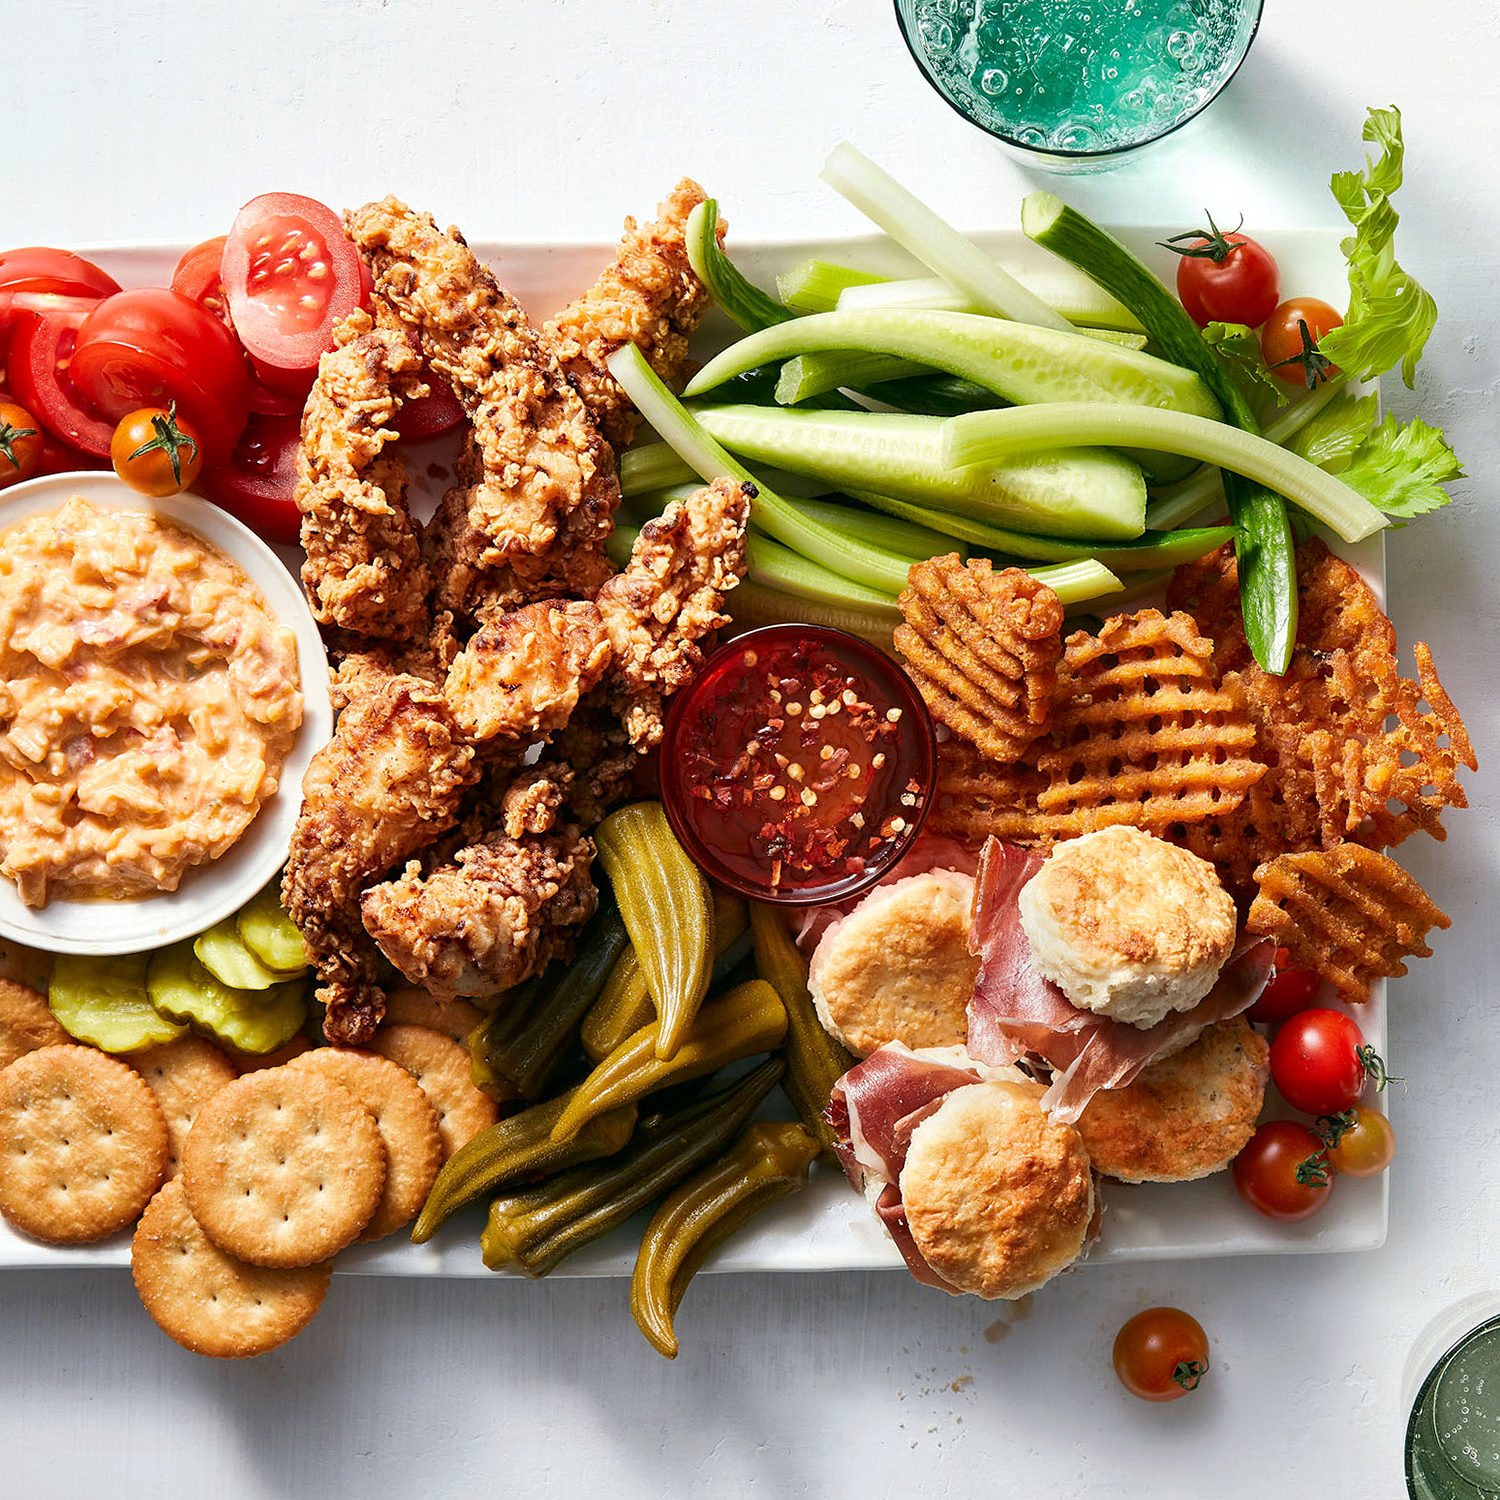 chicken and fixins platter with dip and sauce